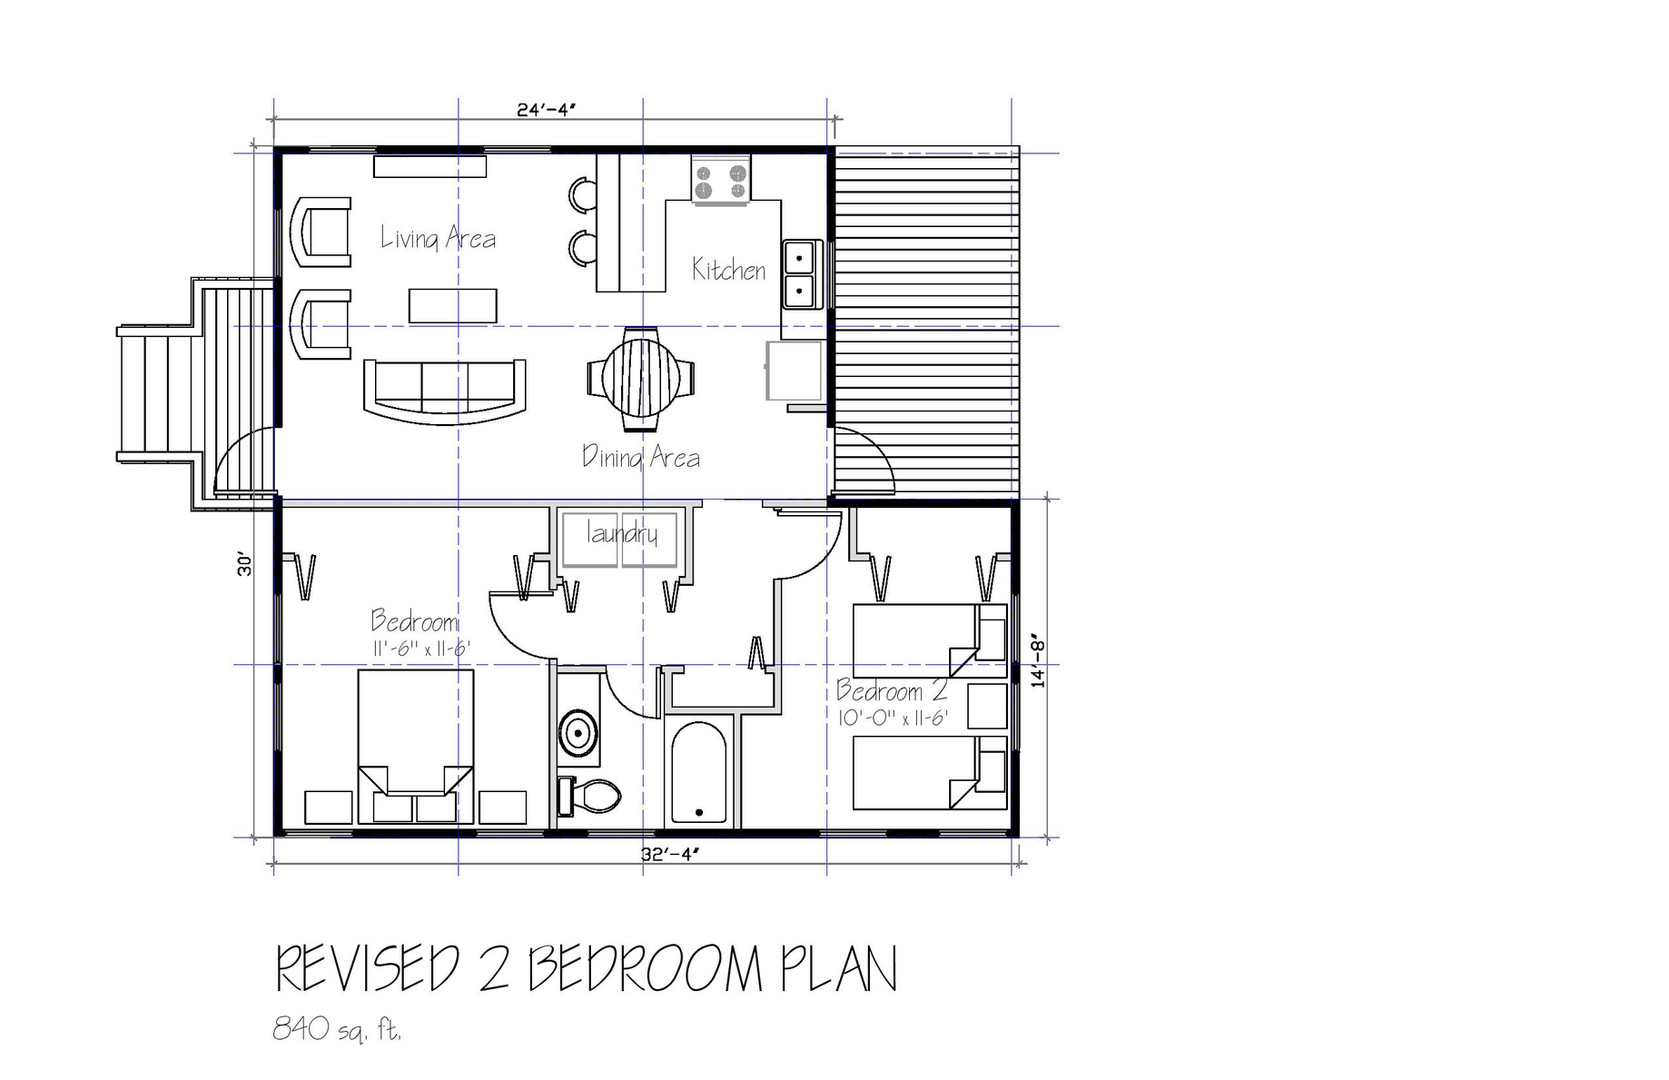 RESTORATION 2 Bedroom Plan (Revised)-pag